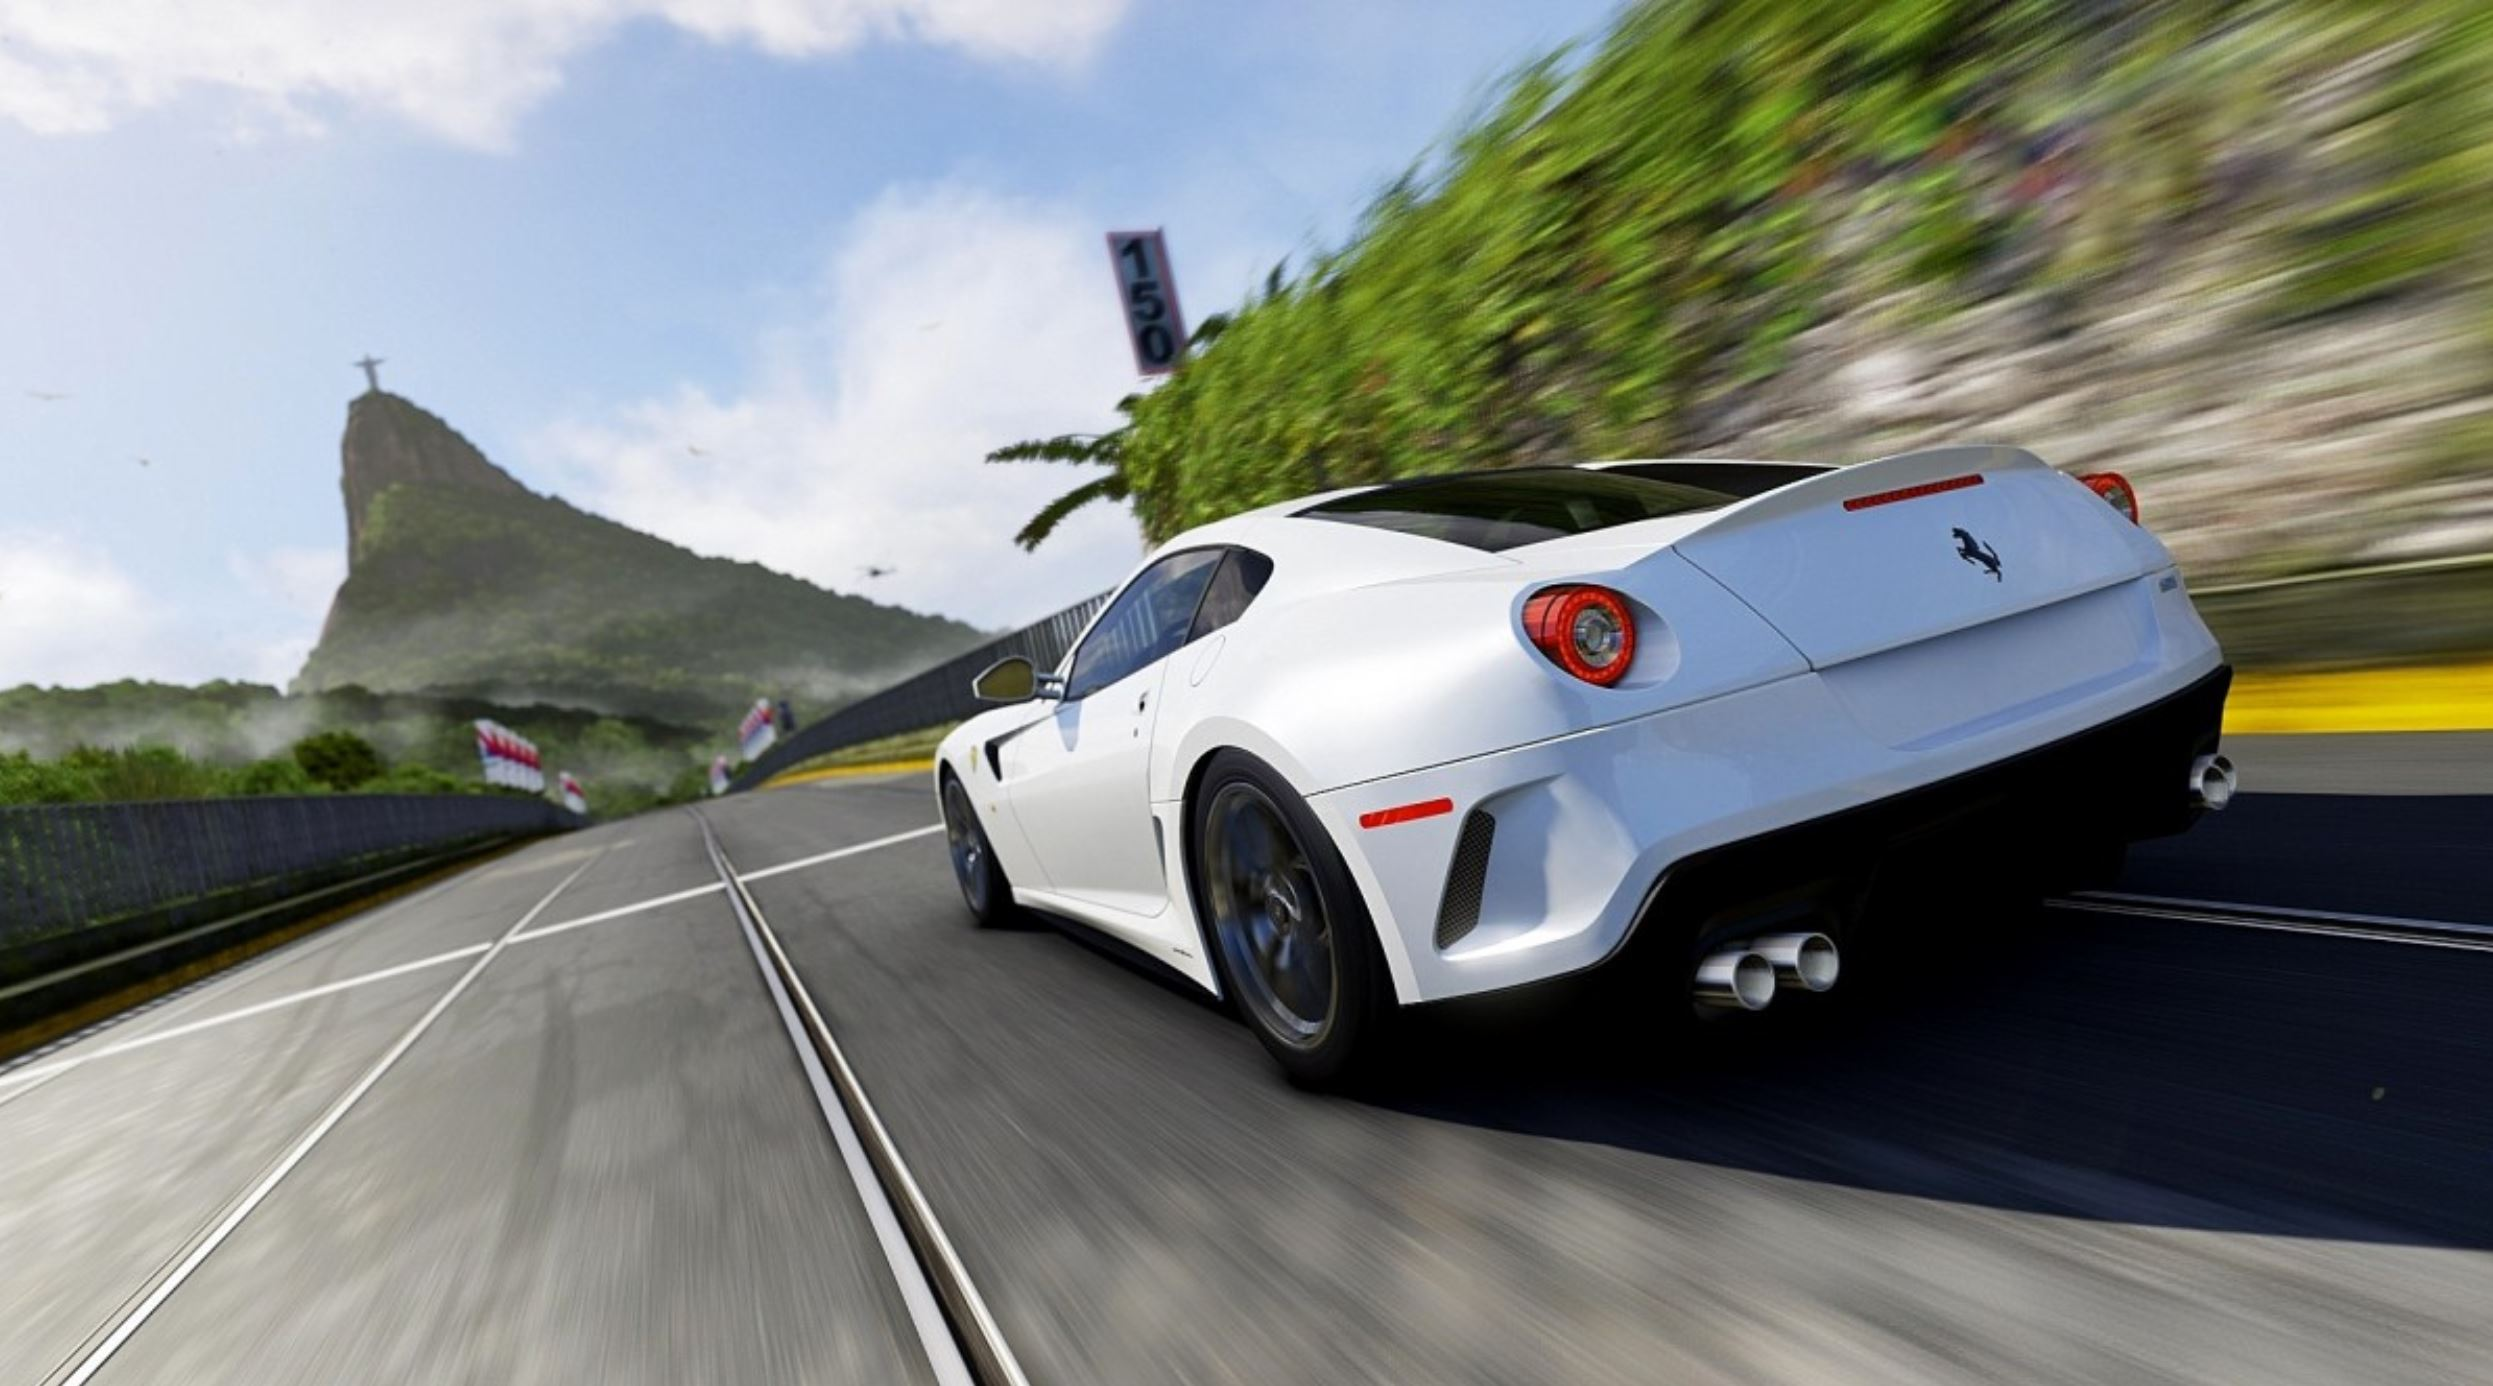 Would You Drive A Ferrari Without Brakes?